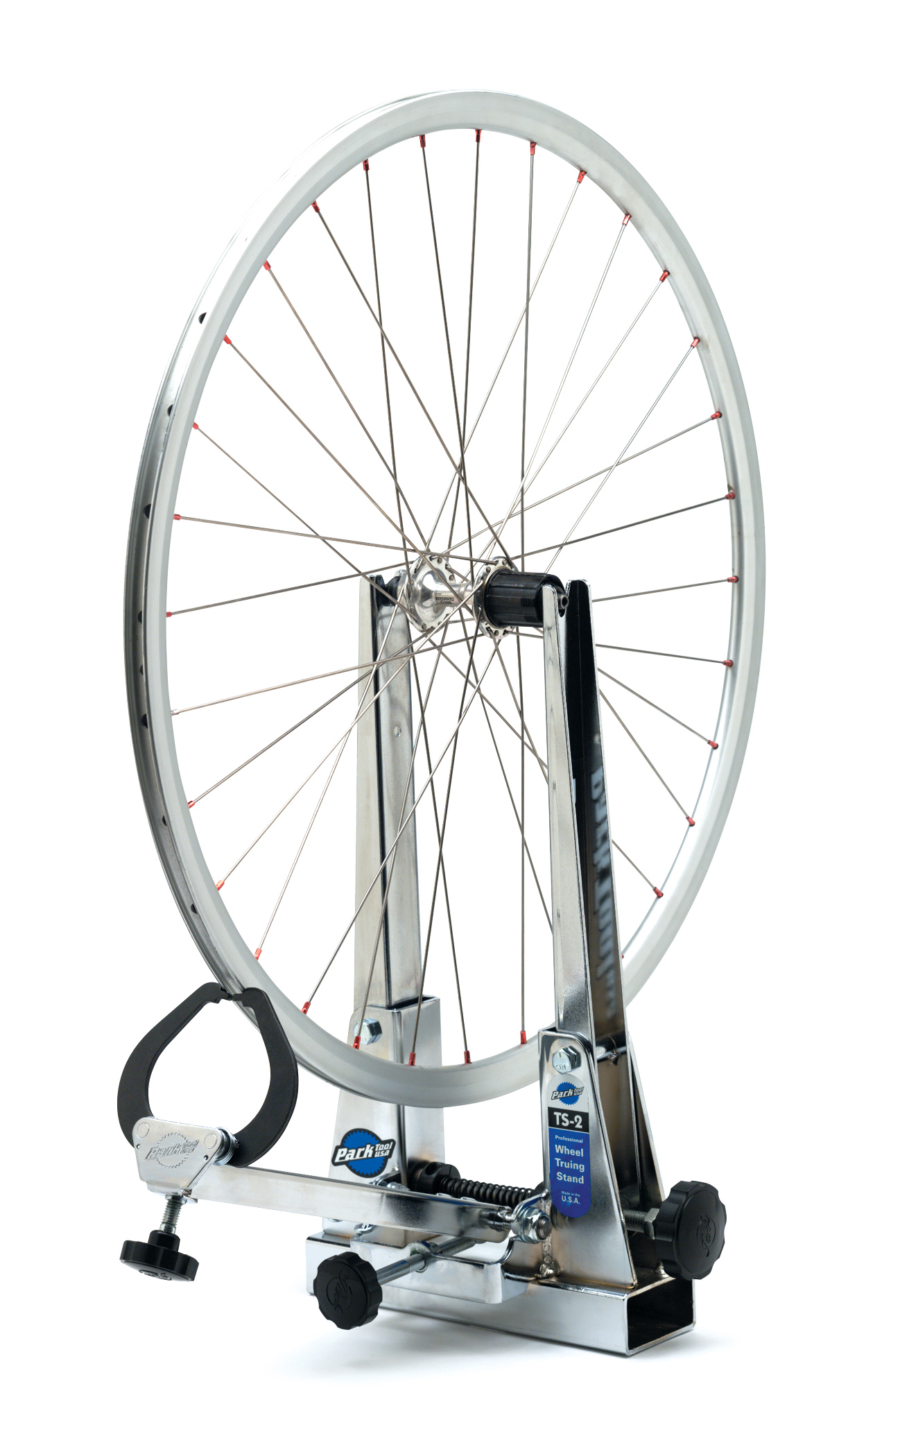 Bike wheel in the Park Tool TS-2 Professional Wheel Truing Stand, enlarged